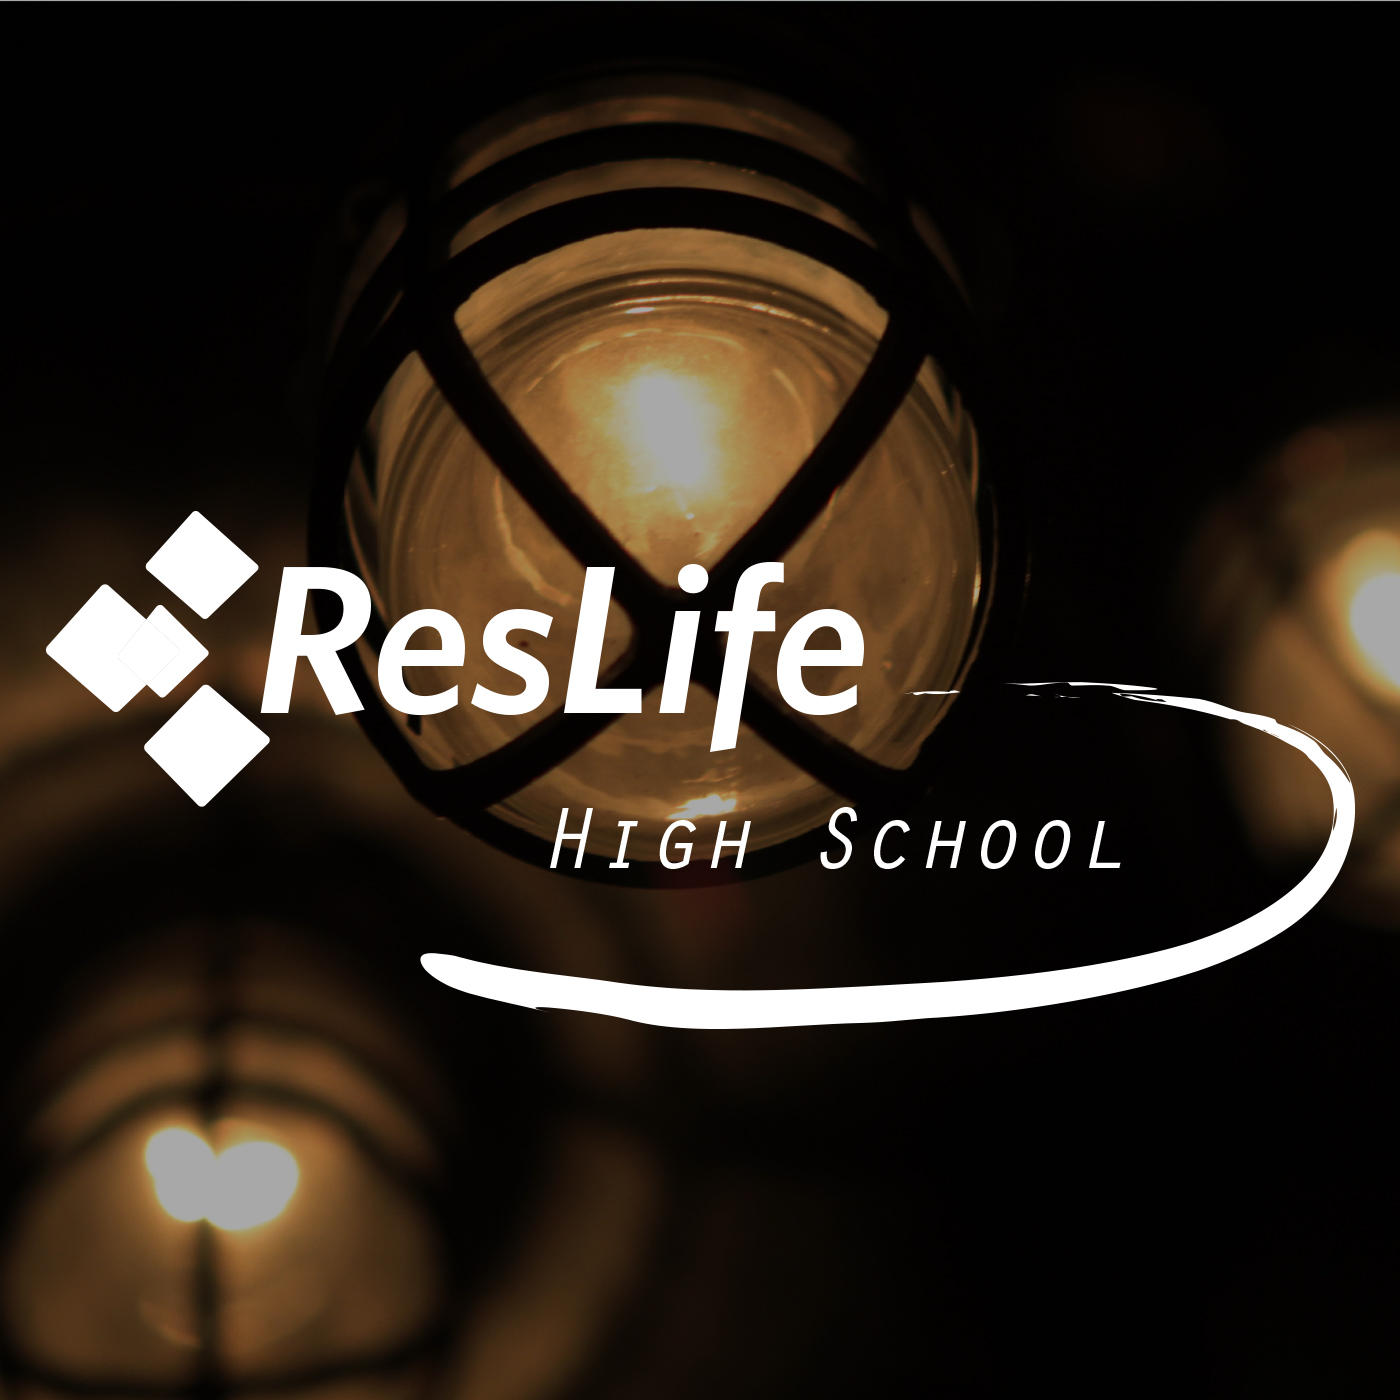 Reslife High School